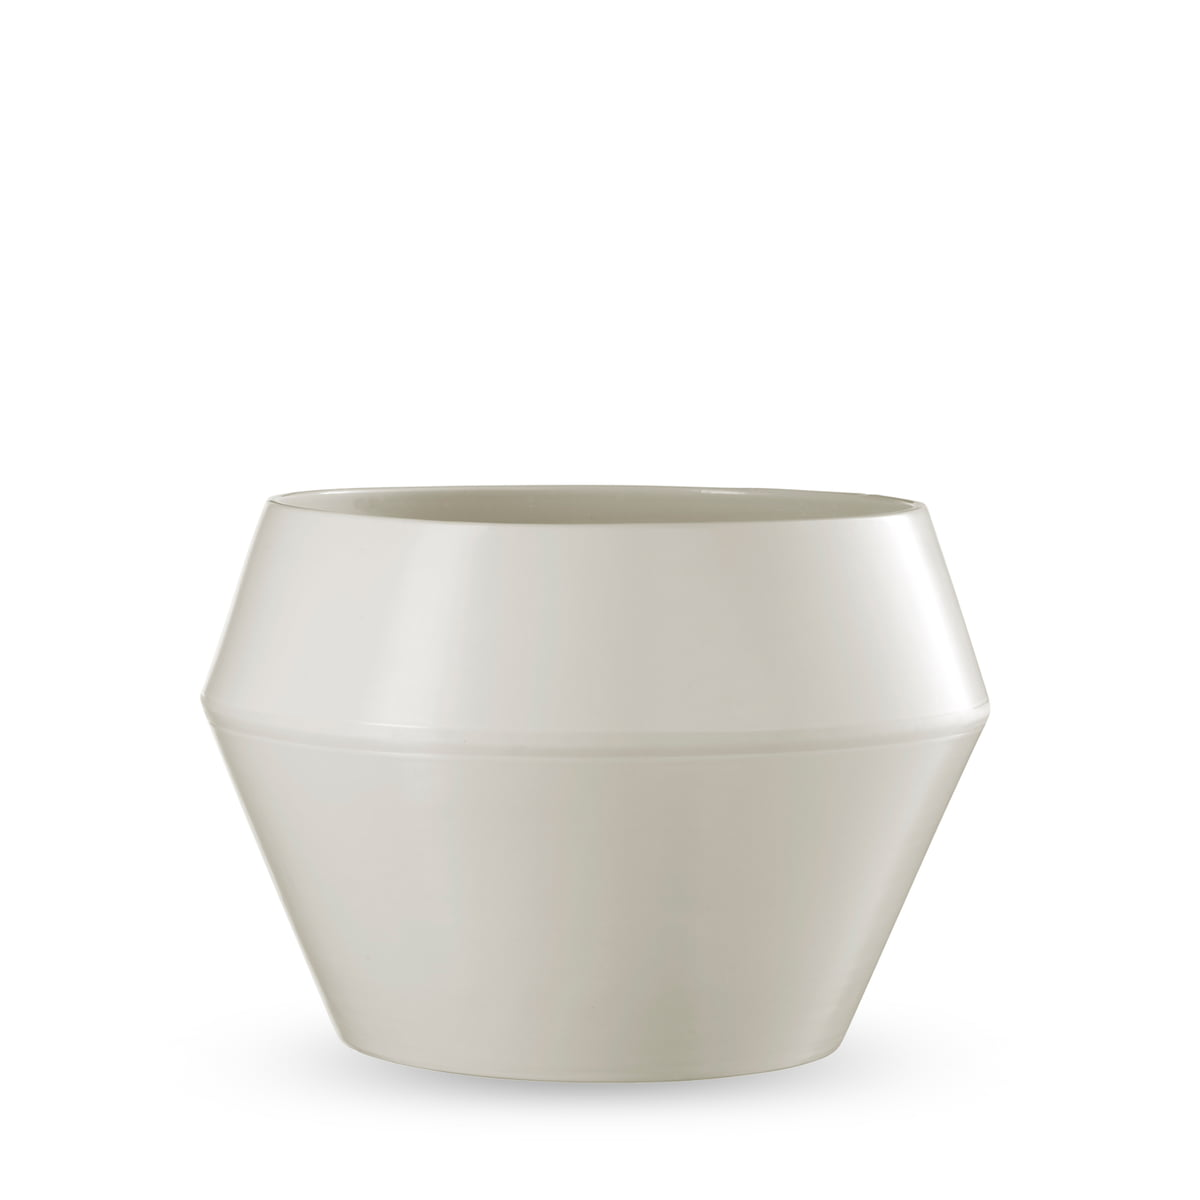 Rimm flower pot large from by lassen in the shop by lassen rimm flowerpot large white reviewsmspy